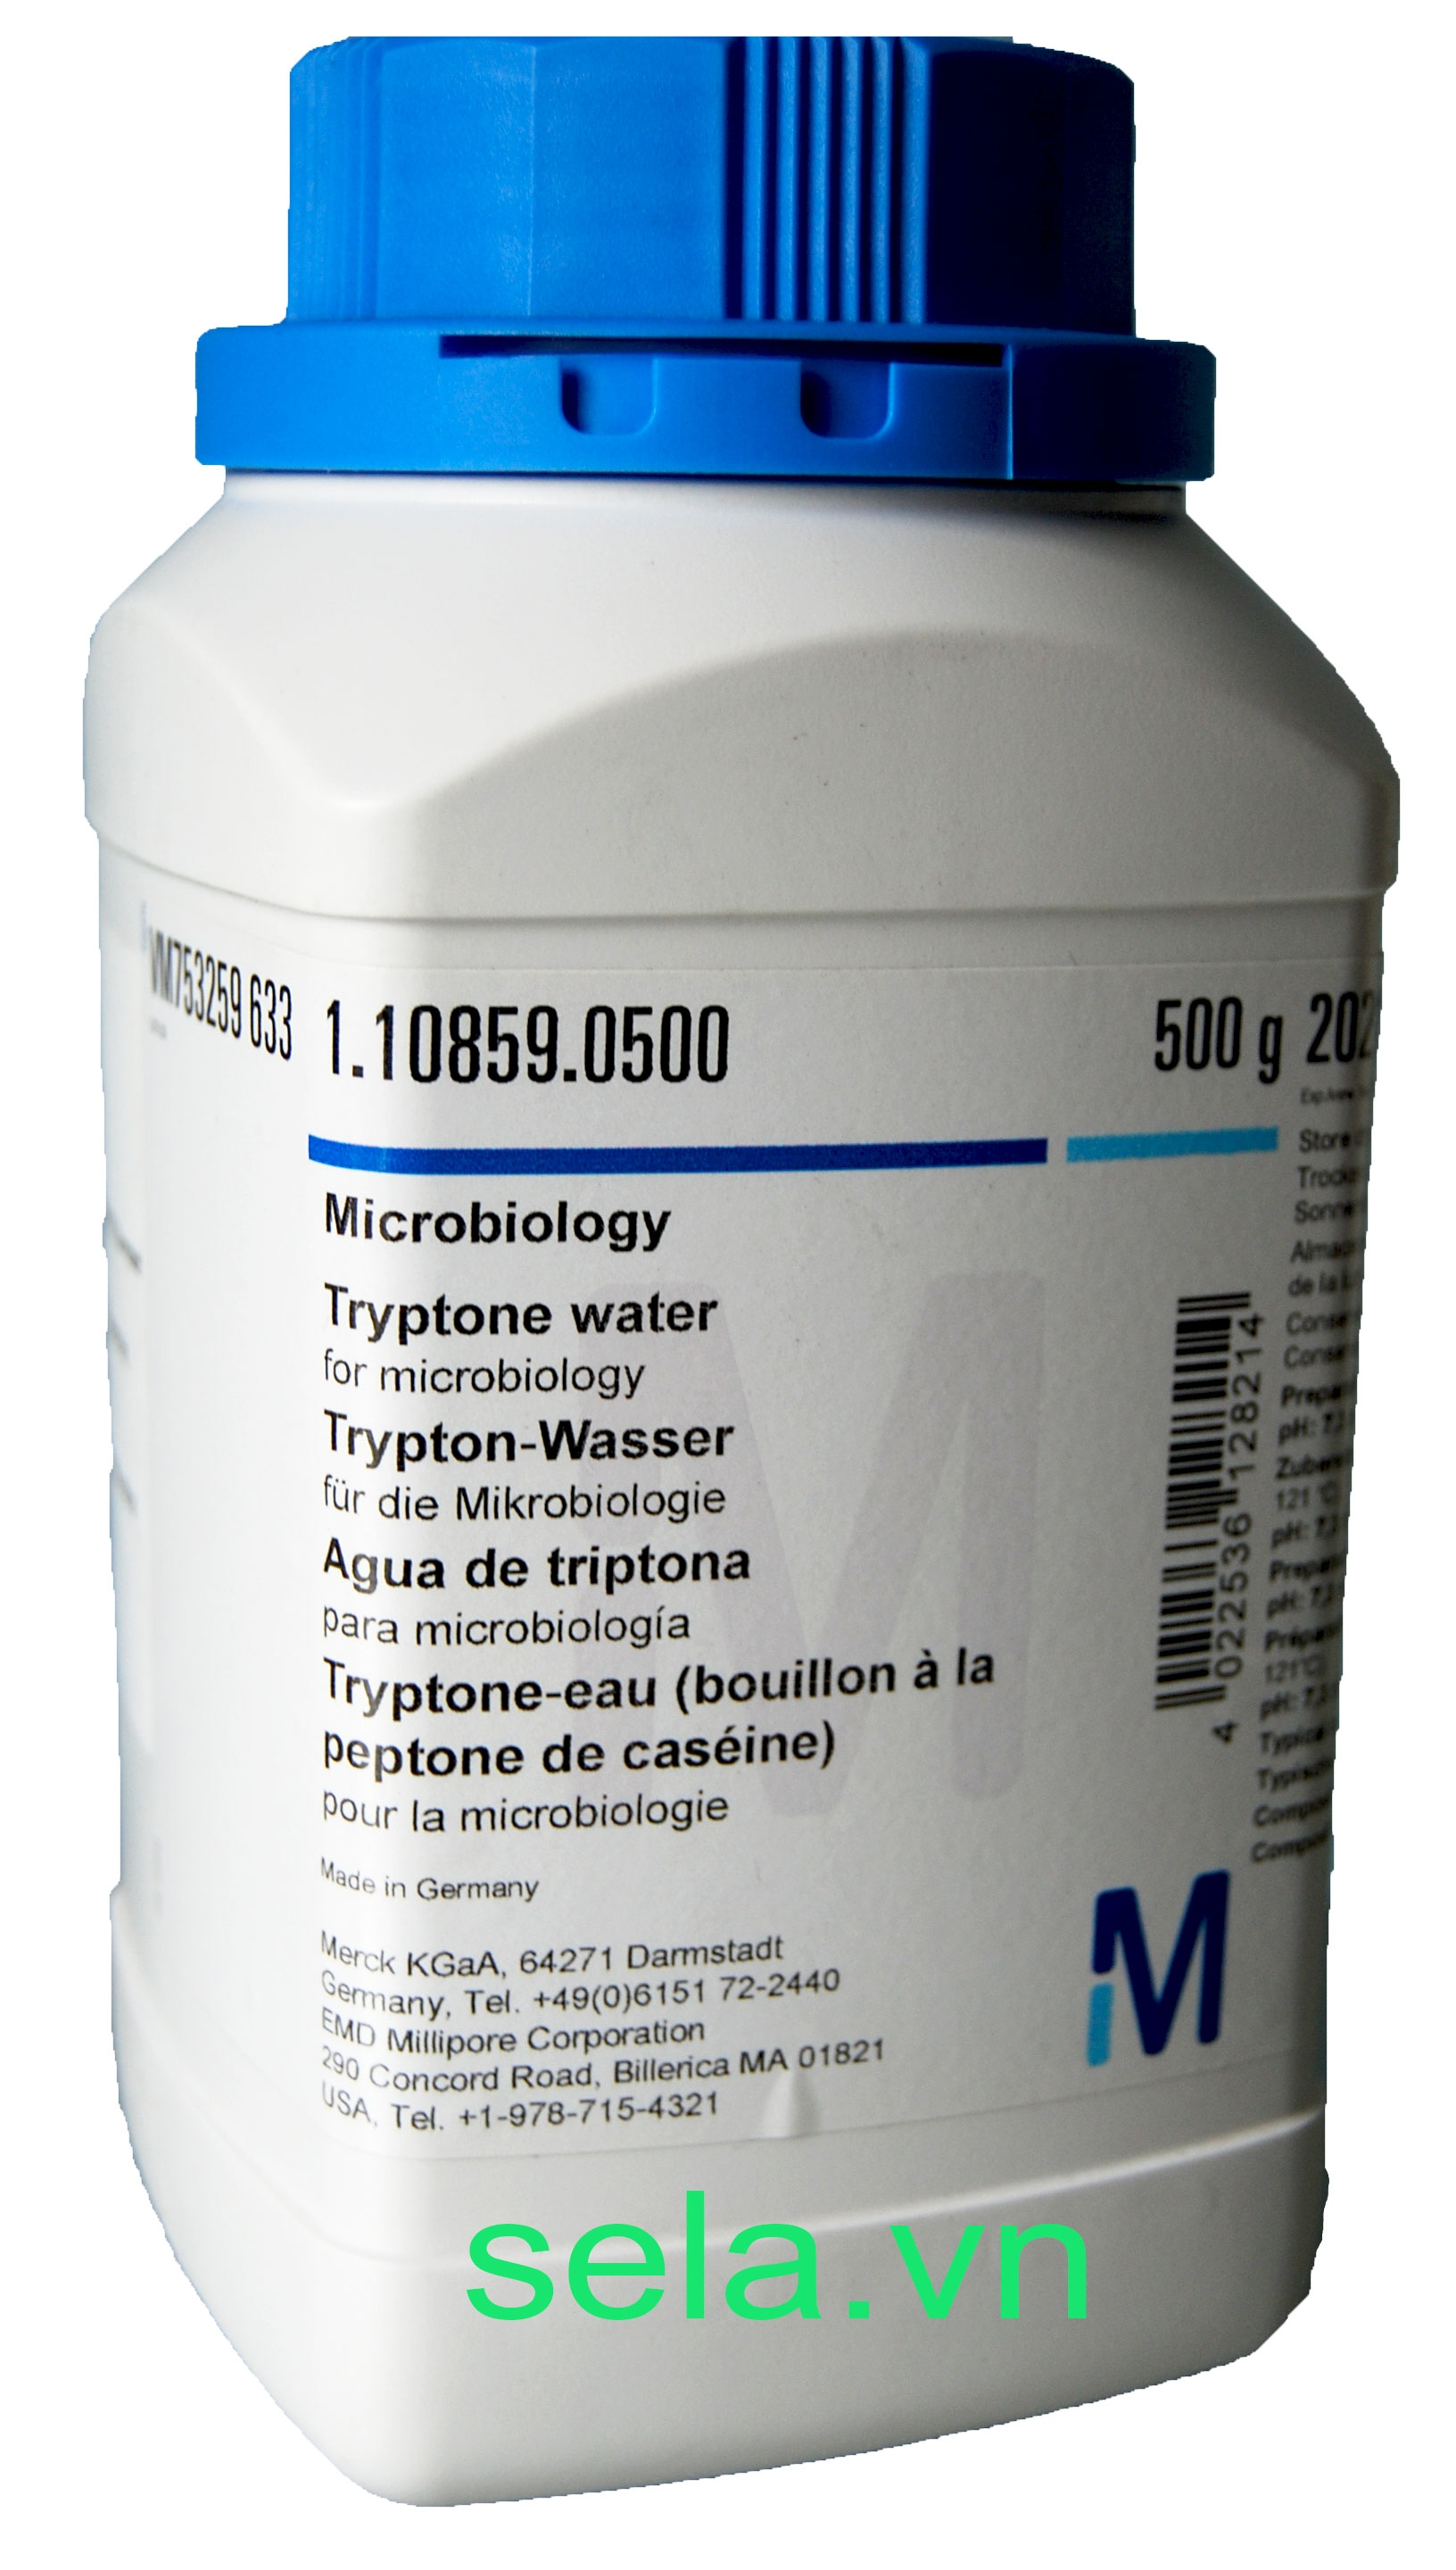 Tryptone water for microbiology